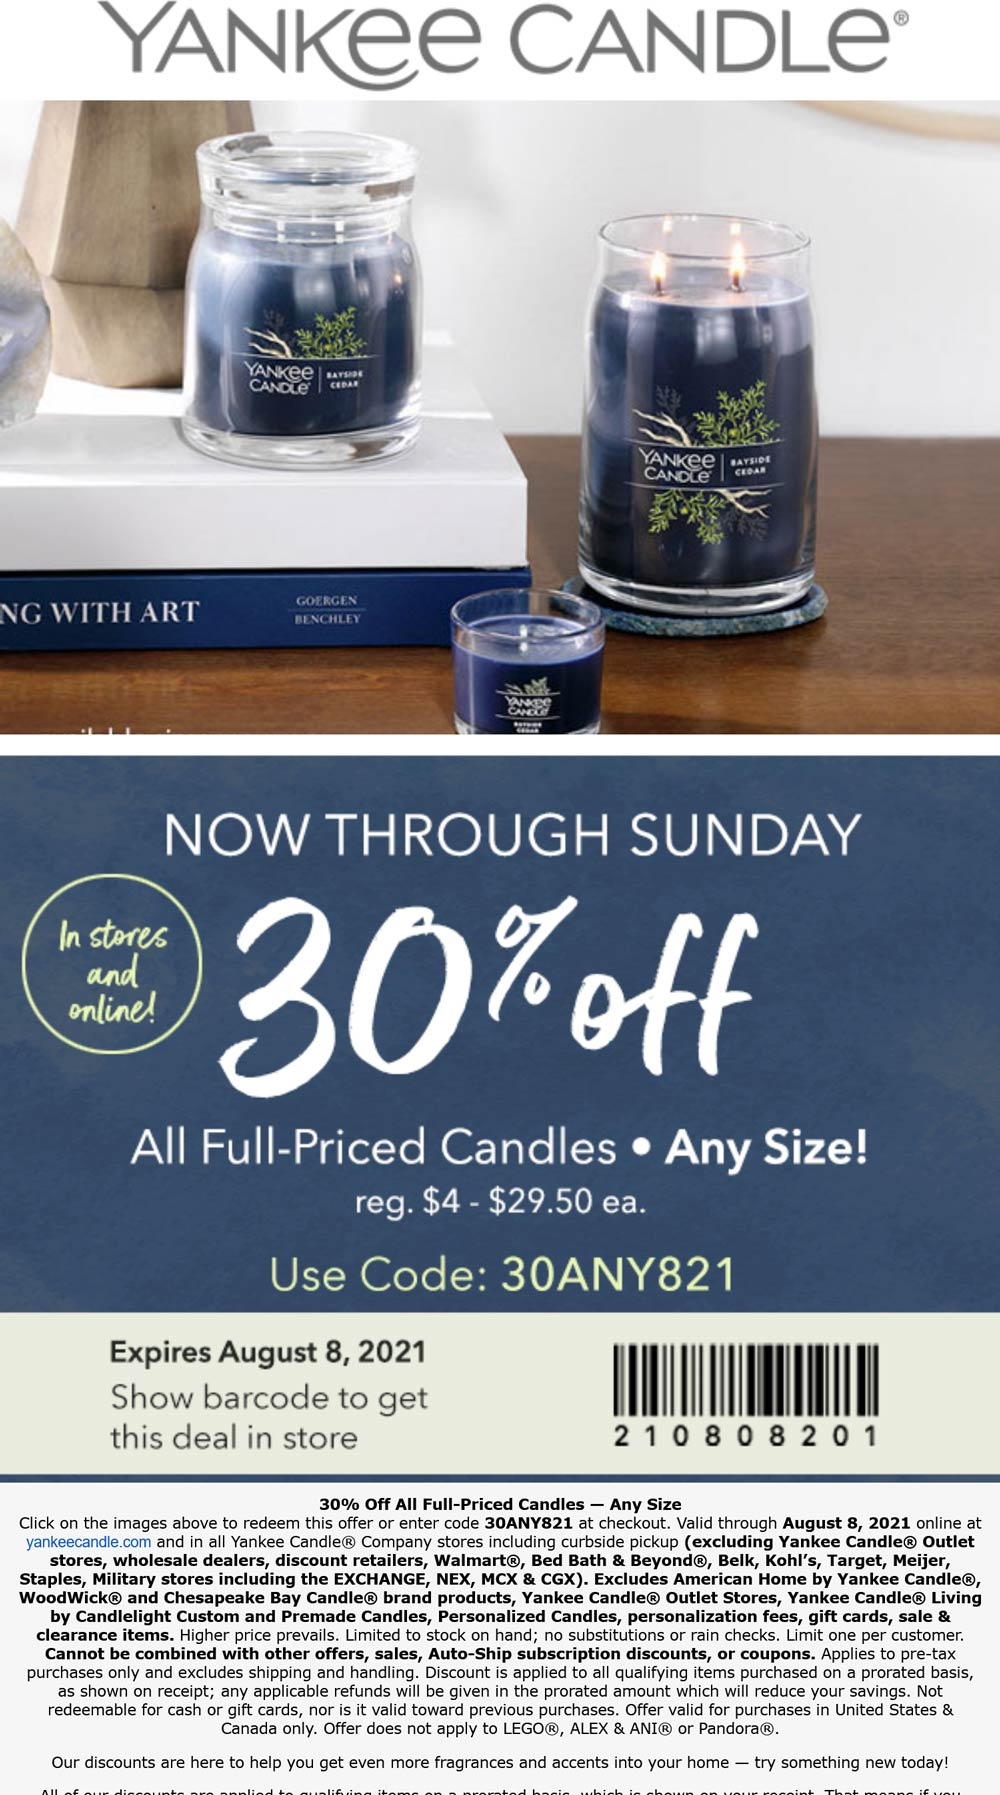 Yankee Candle stores Coupon  30% off all candles at Yankee Candle, or online via promo code 30ANY821 #yankeecandle